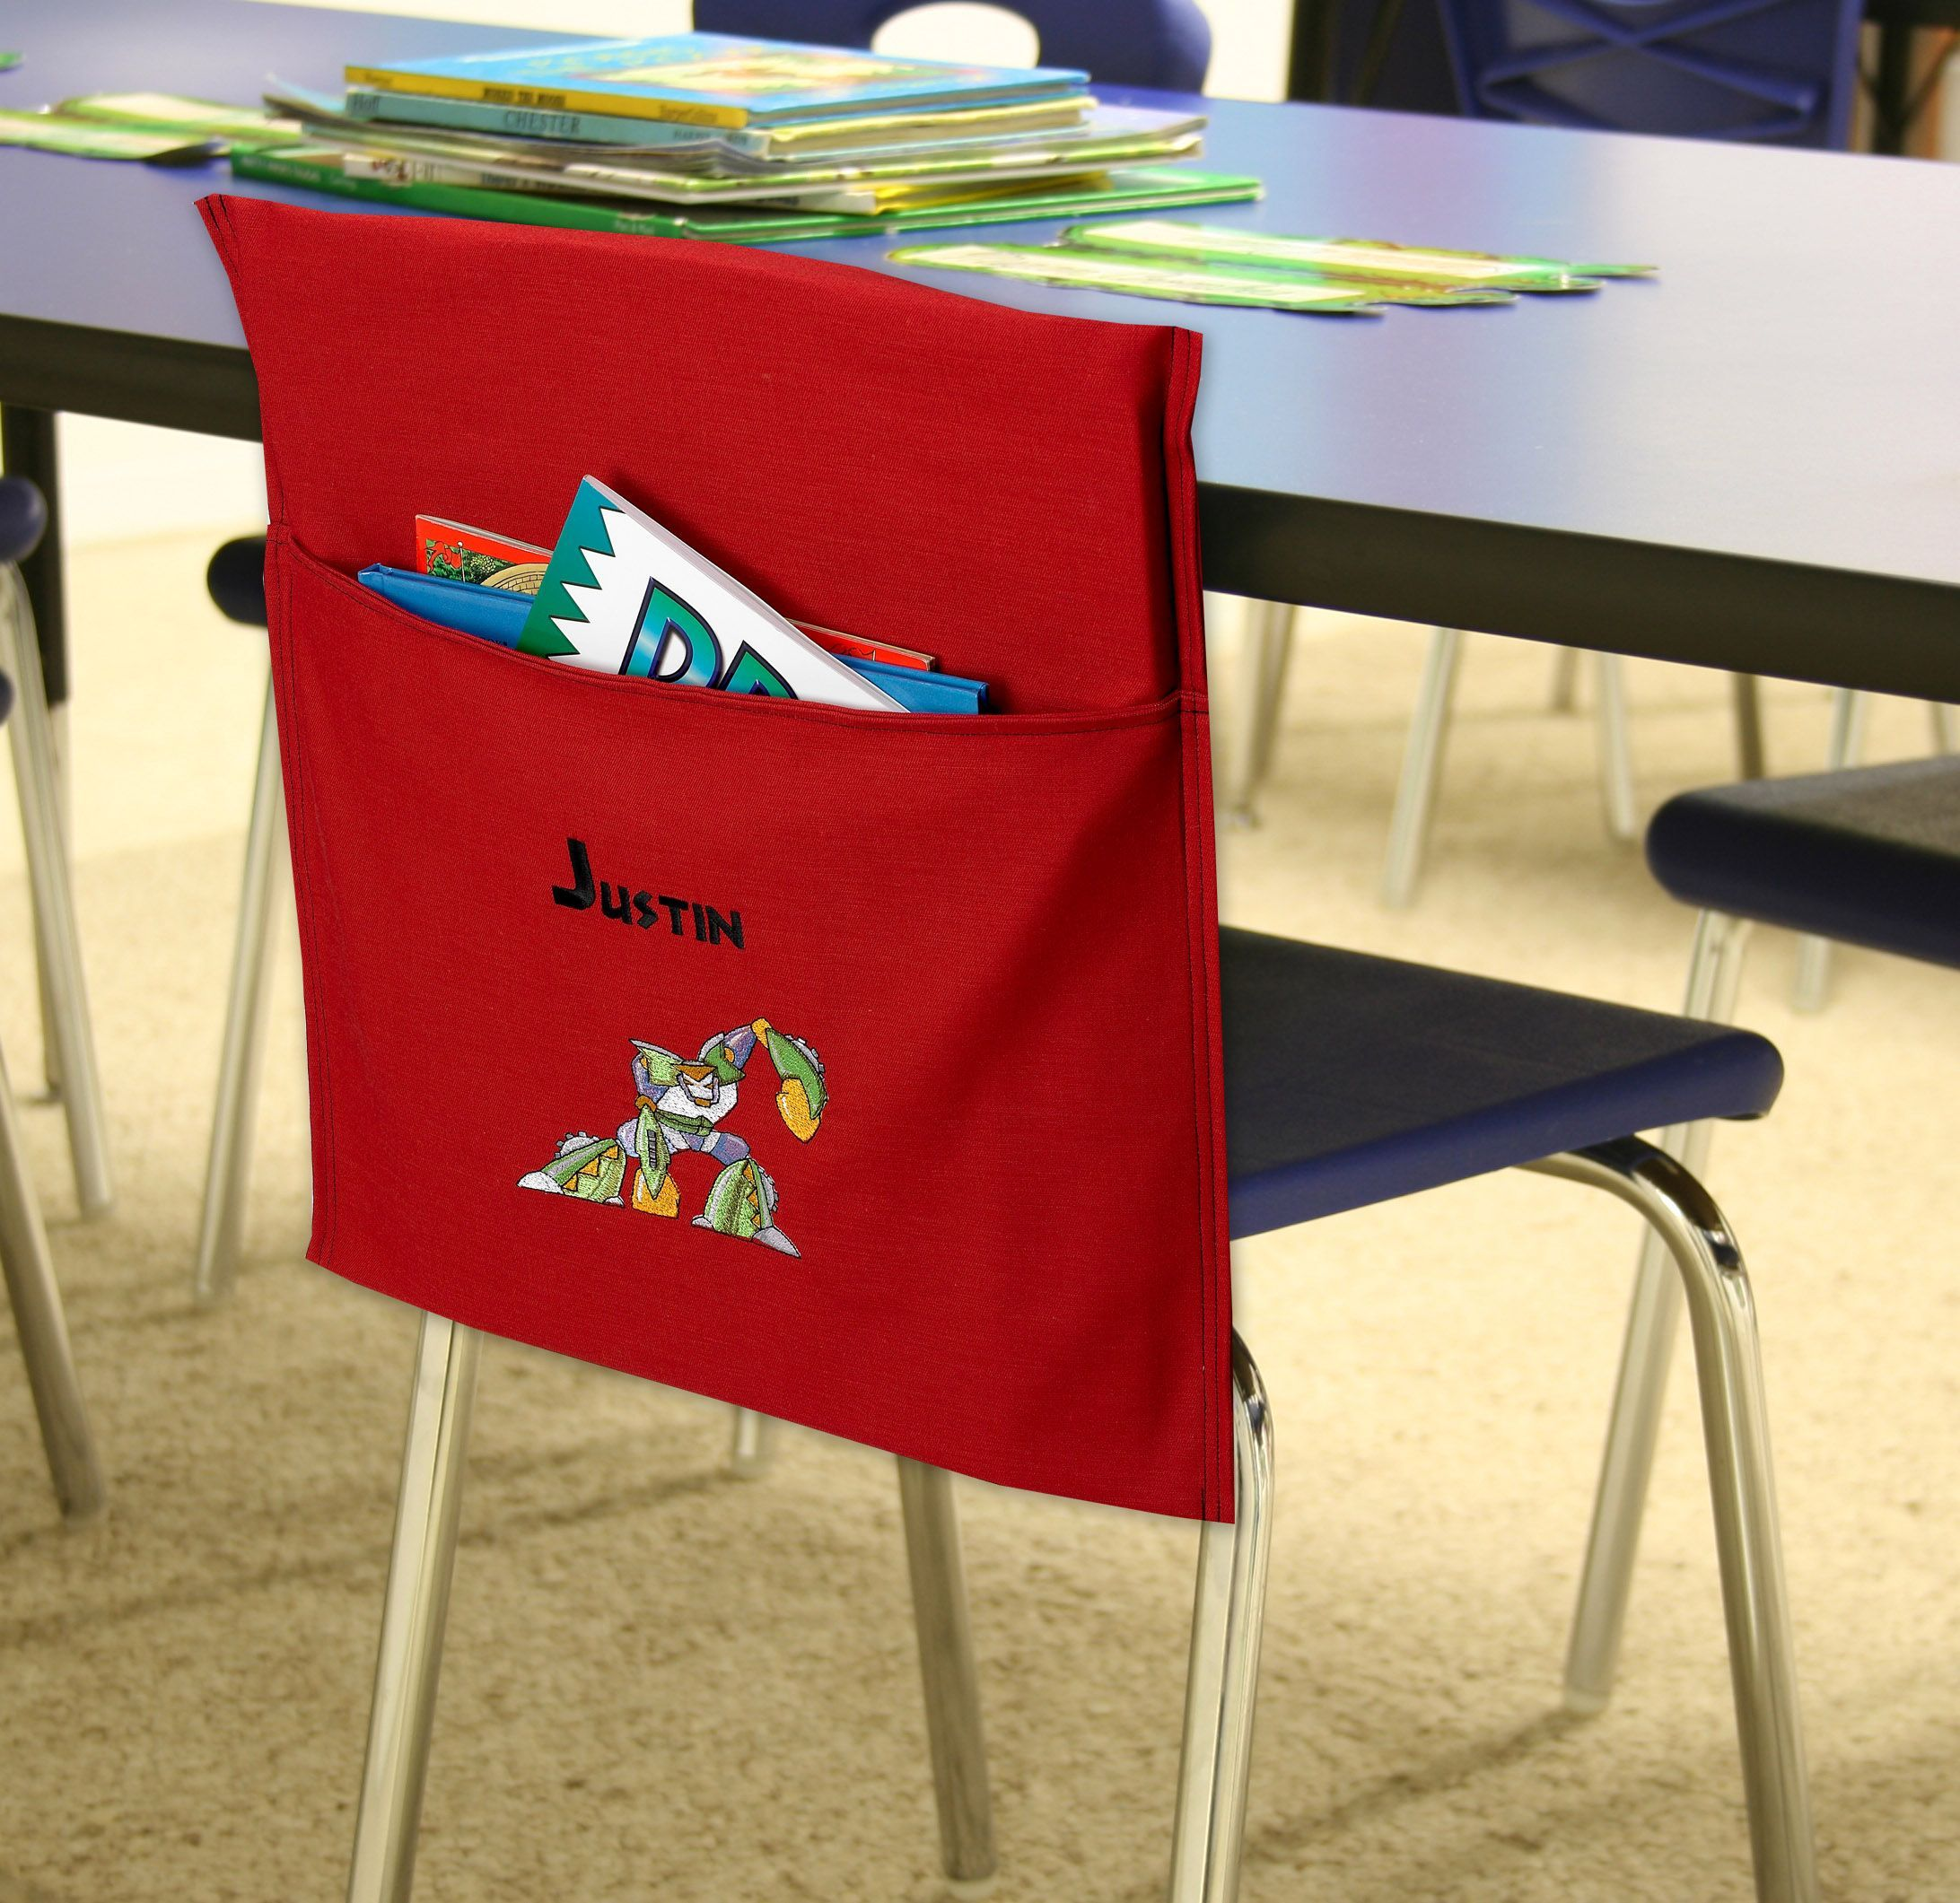 Chair Pocket Chair Cover With Pocket How Handy And Fun Is This Desk